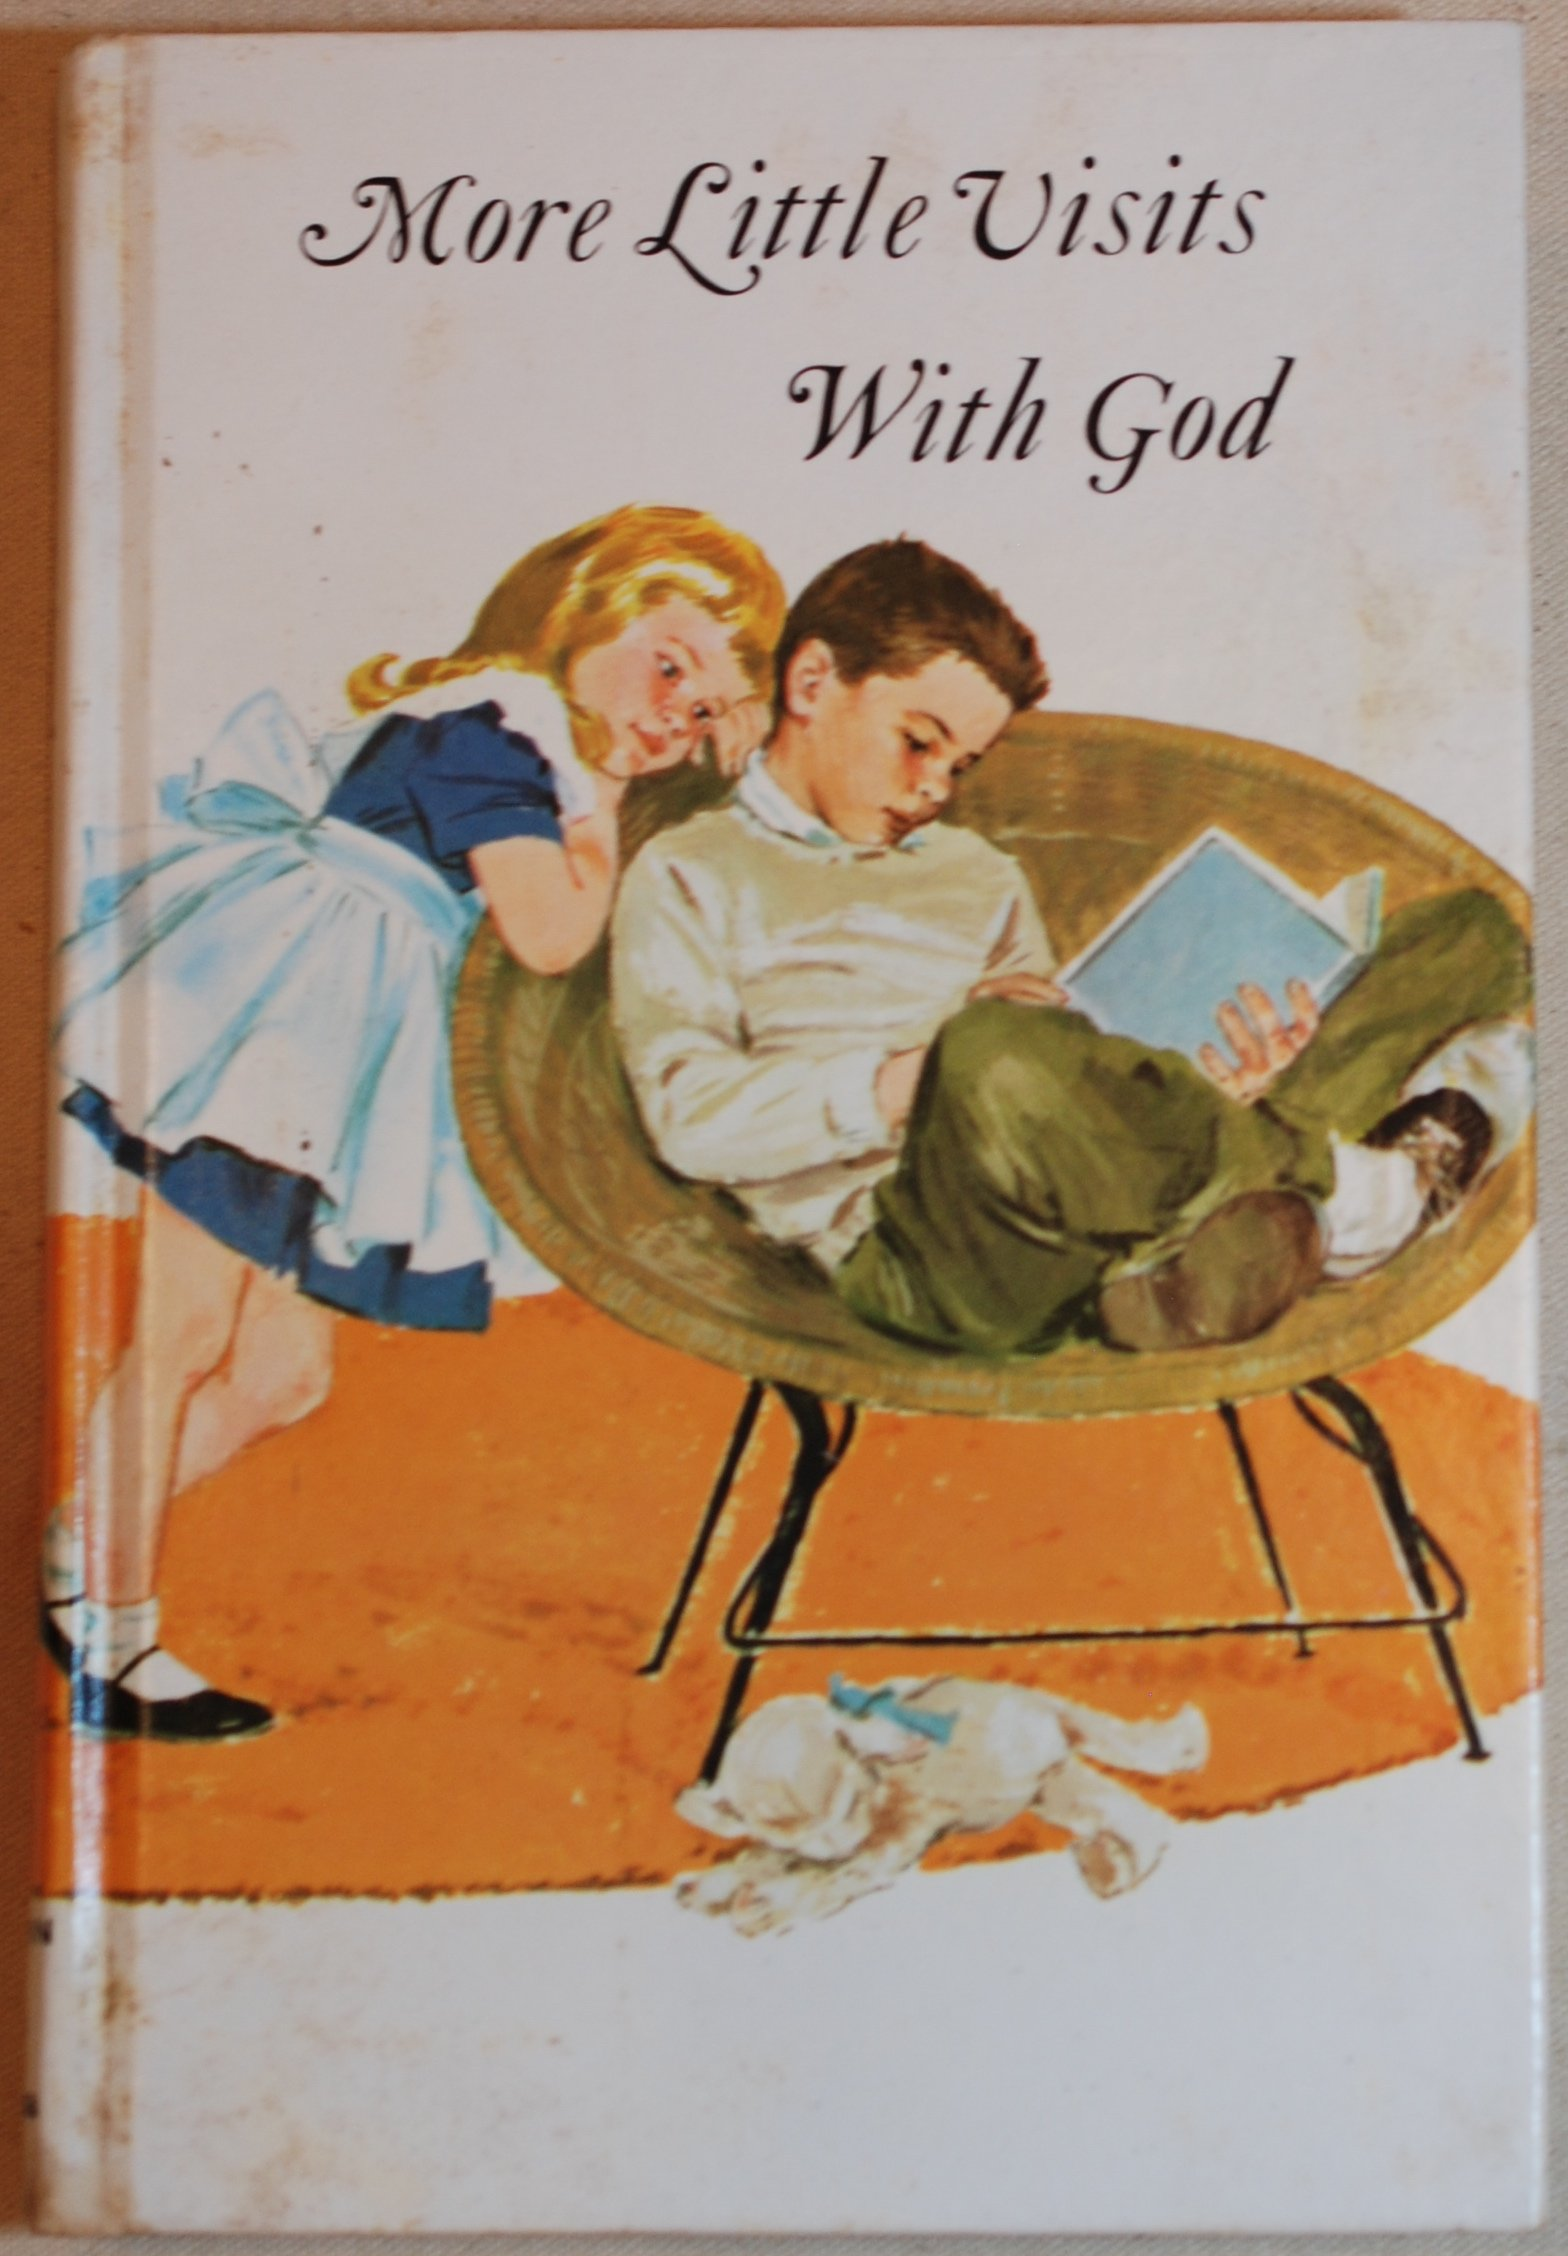 MORE LITTLE VISITS WITH GOD Devotions for Families with Young Children:  Allan Hart and Simon, Martin P. Jahsmann: Amazon.com: Books